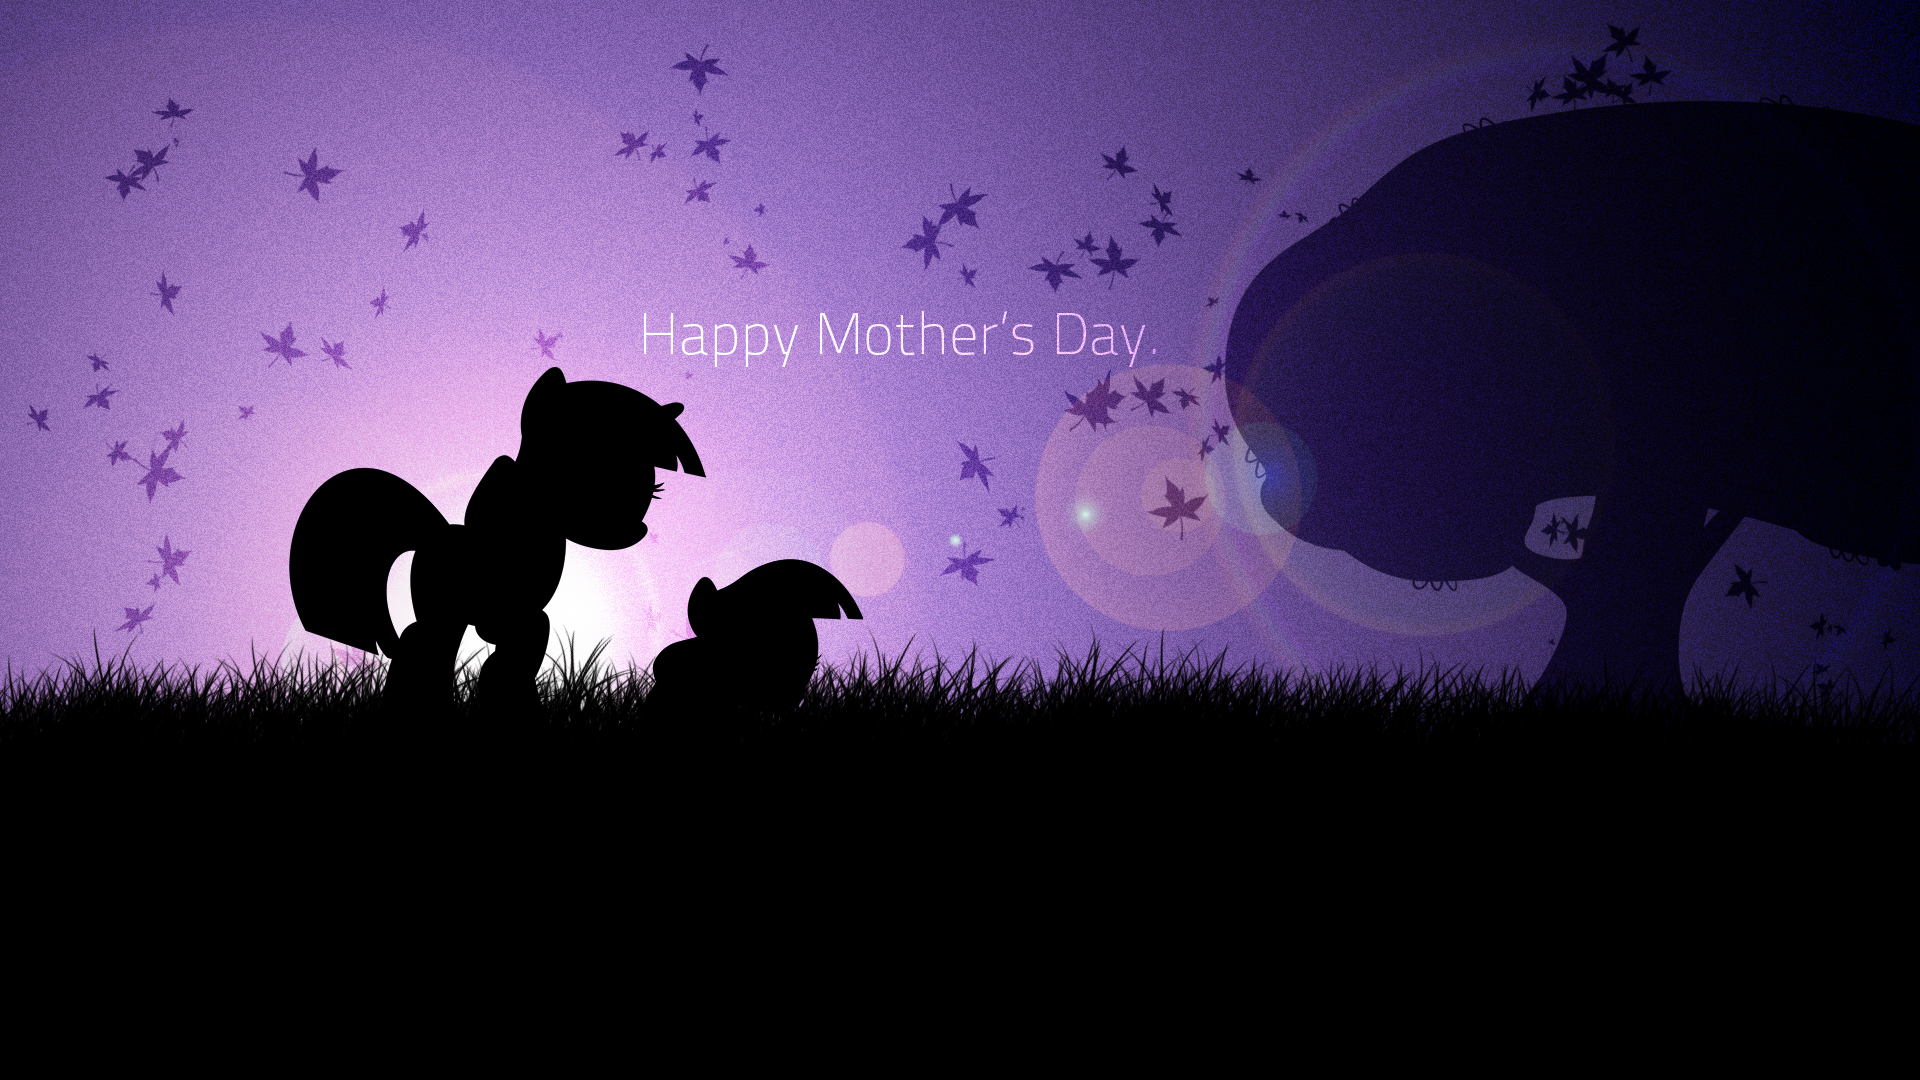 Mothers Day Desktop Backgrounds 1920x1080